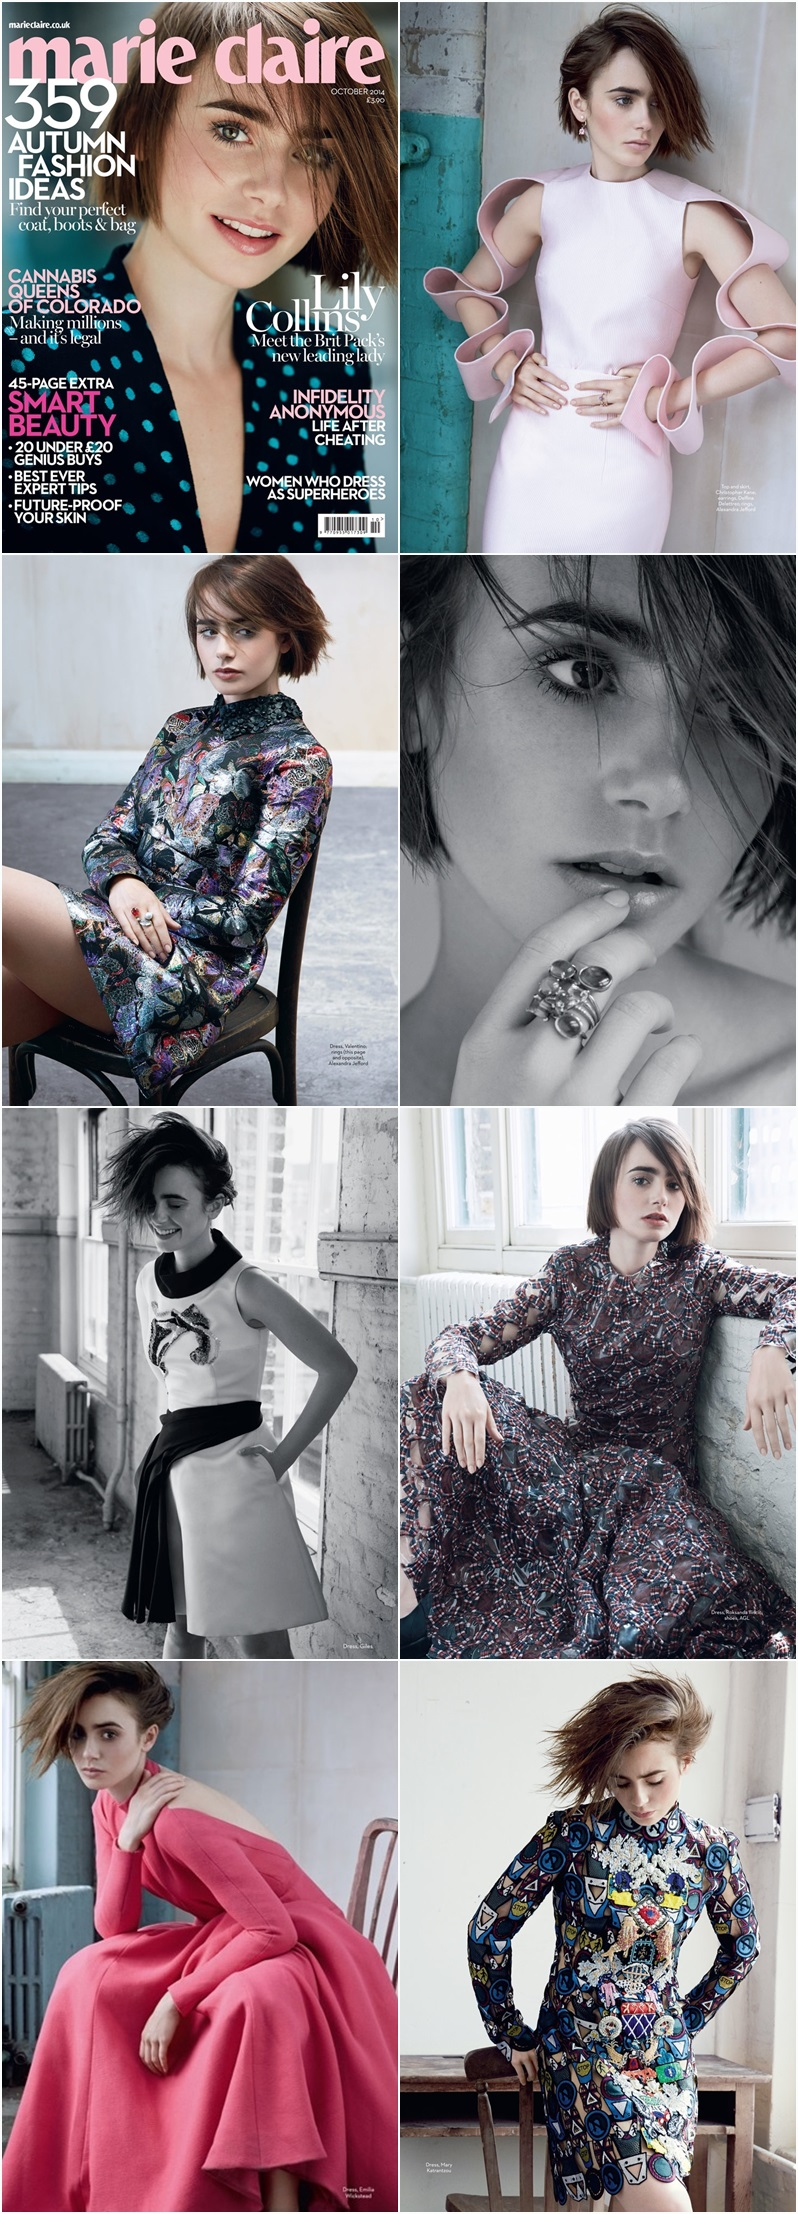 lily-collins-marie-claire-fashion4addicts.com